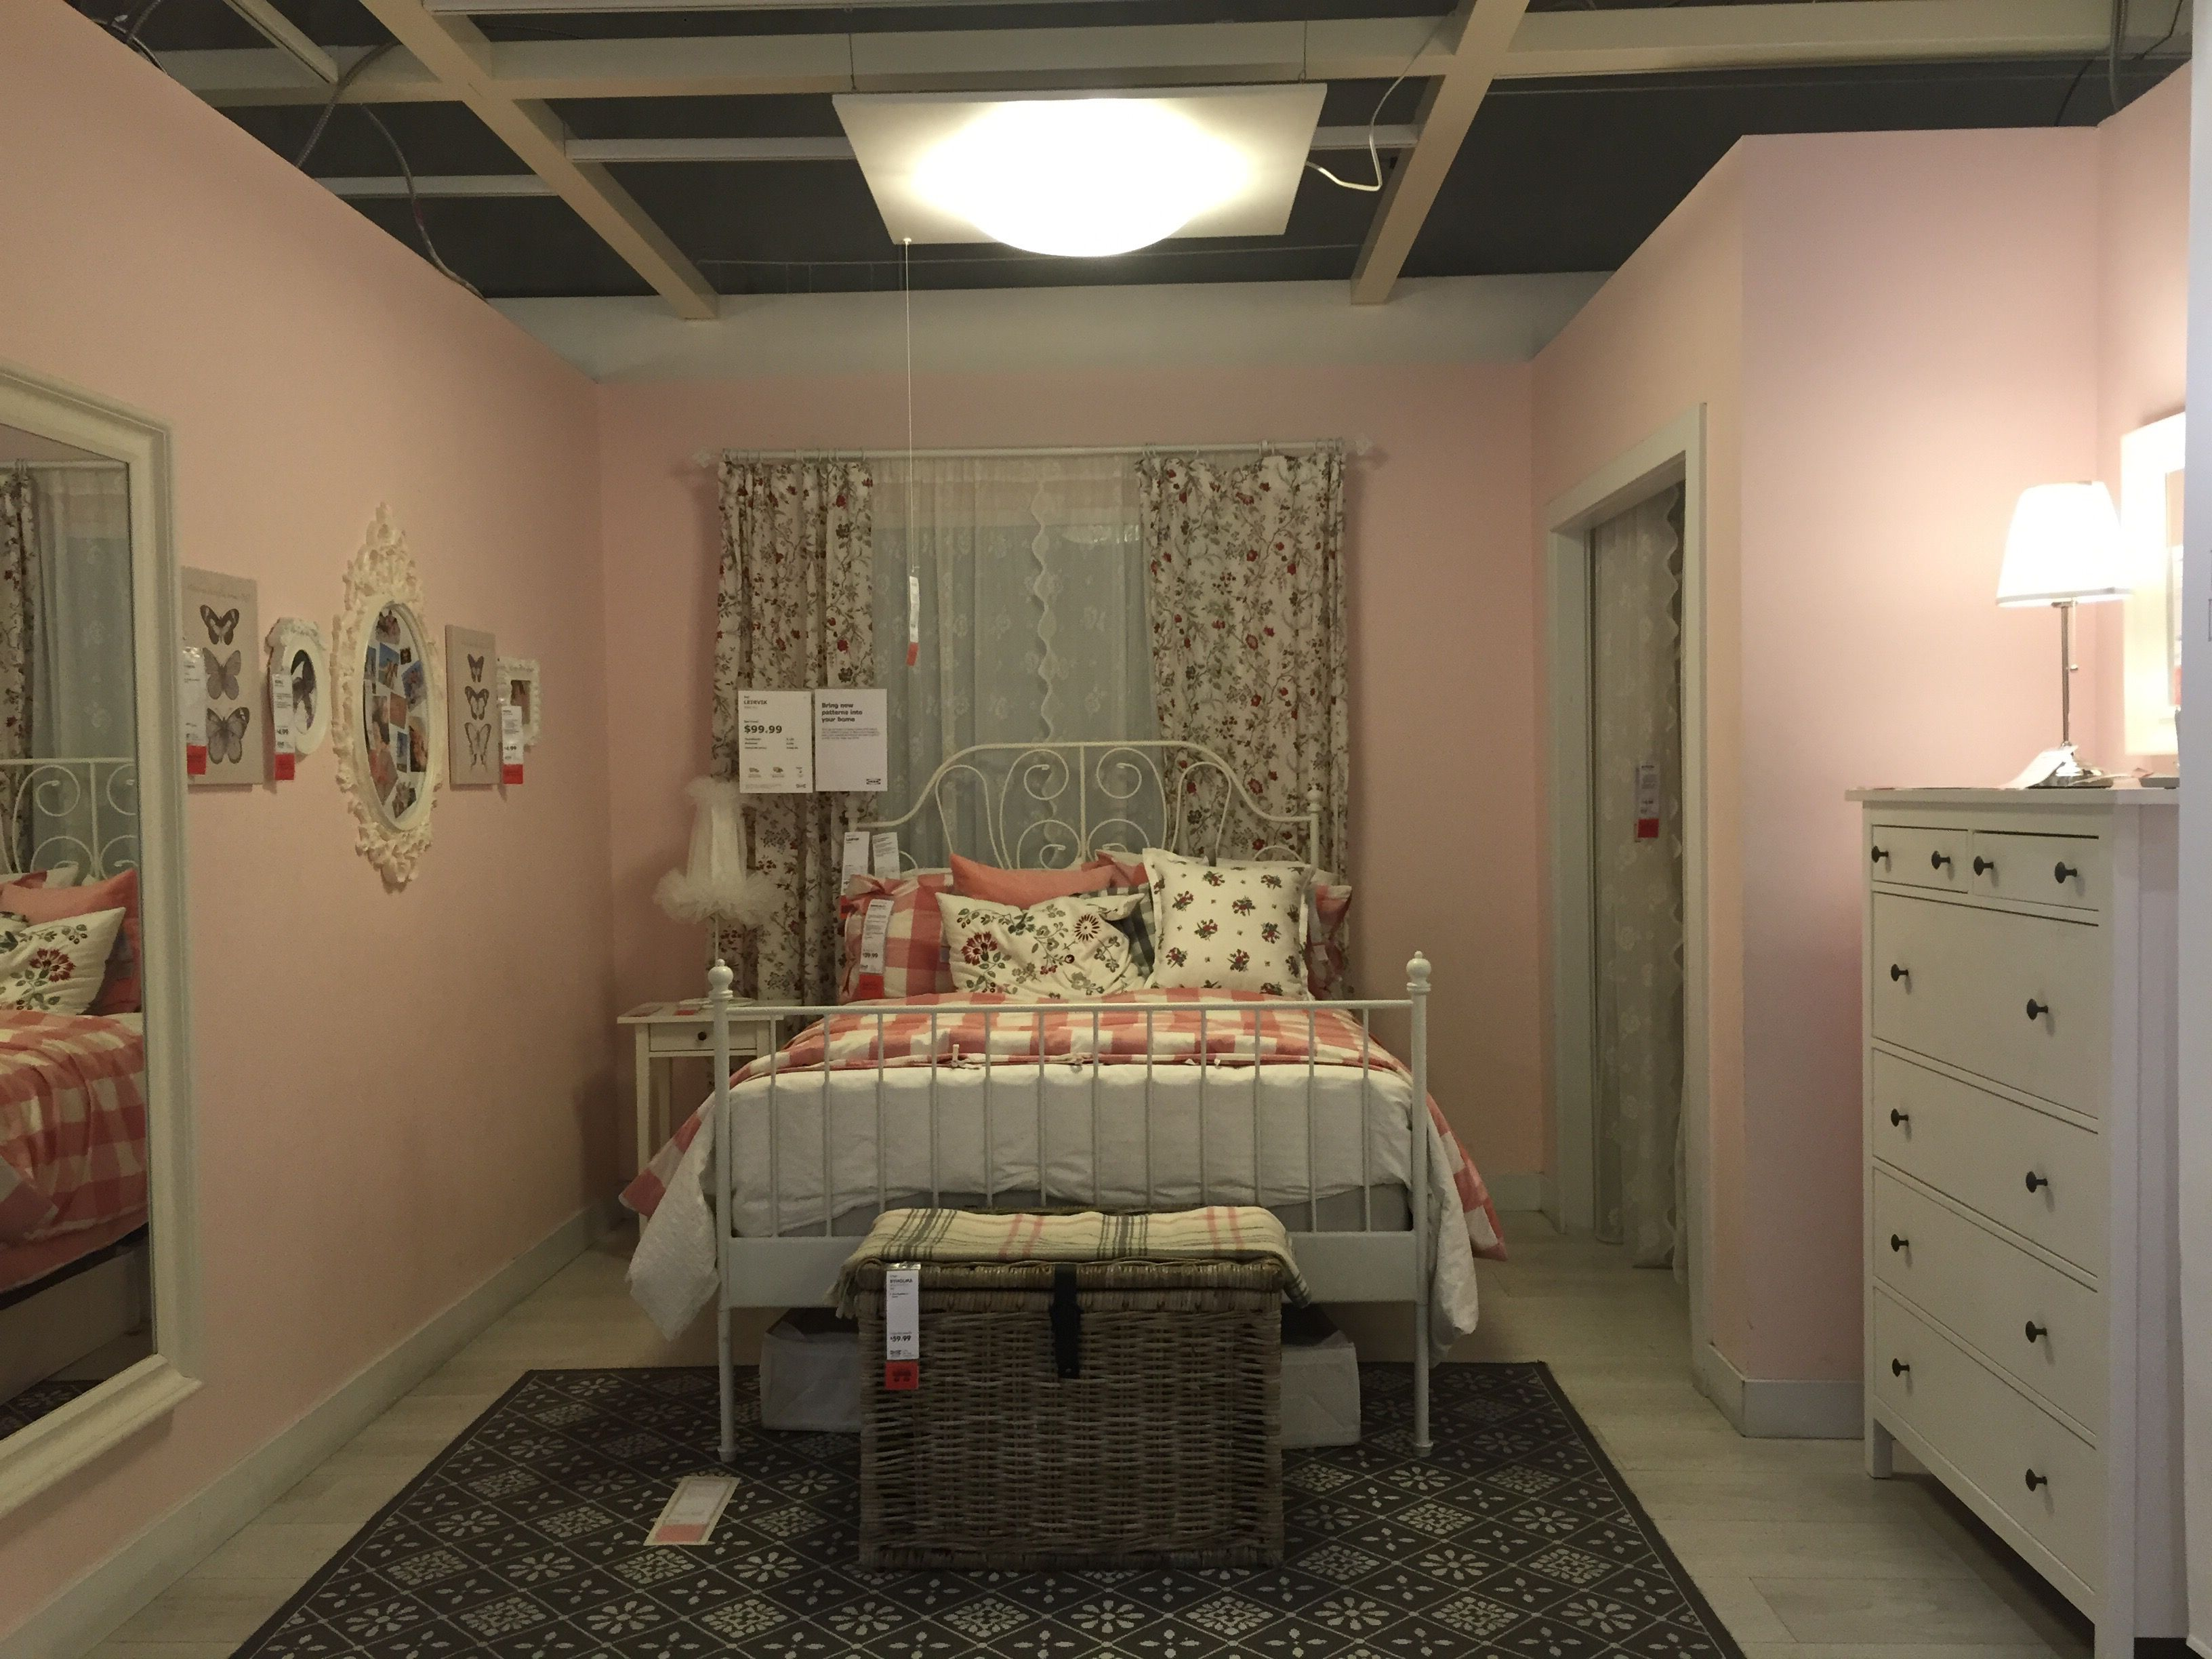 Ikea showroom Leirvik bed Hemnes nightstand and dresser Pink walls ...